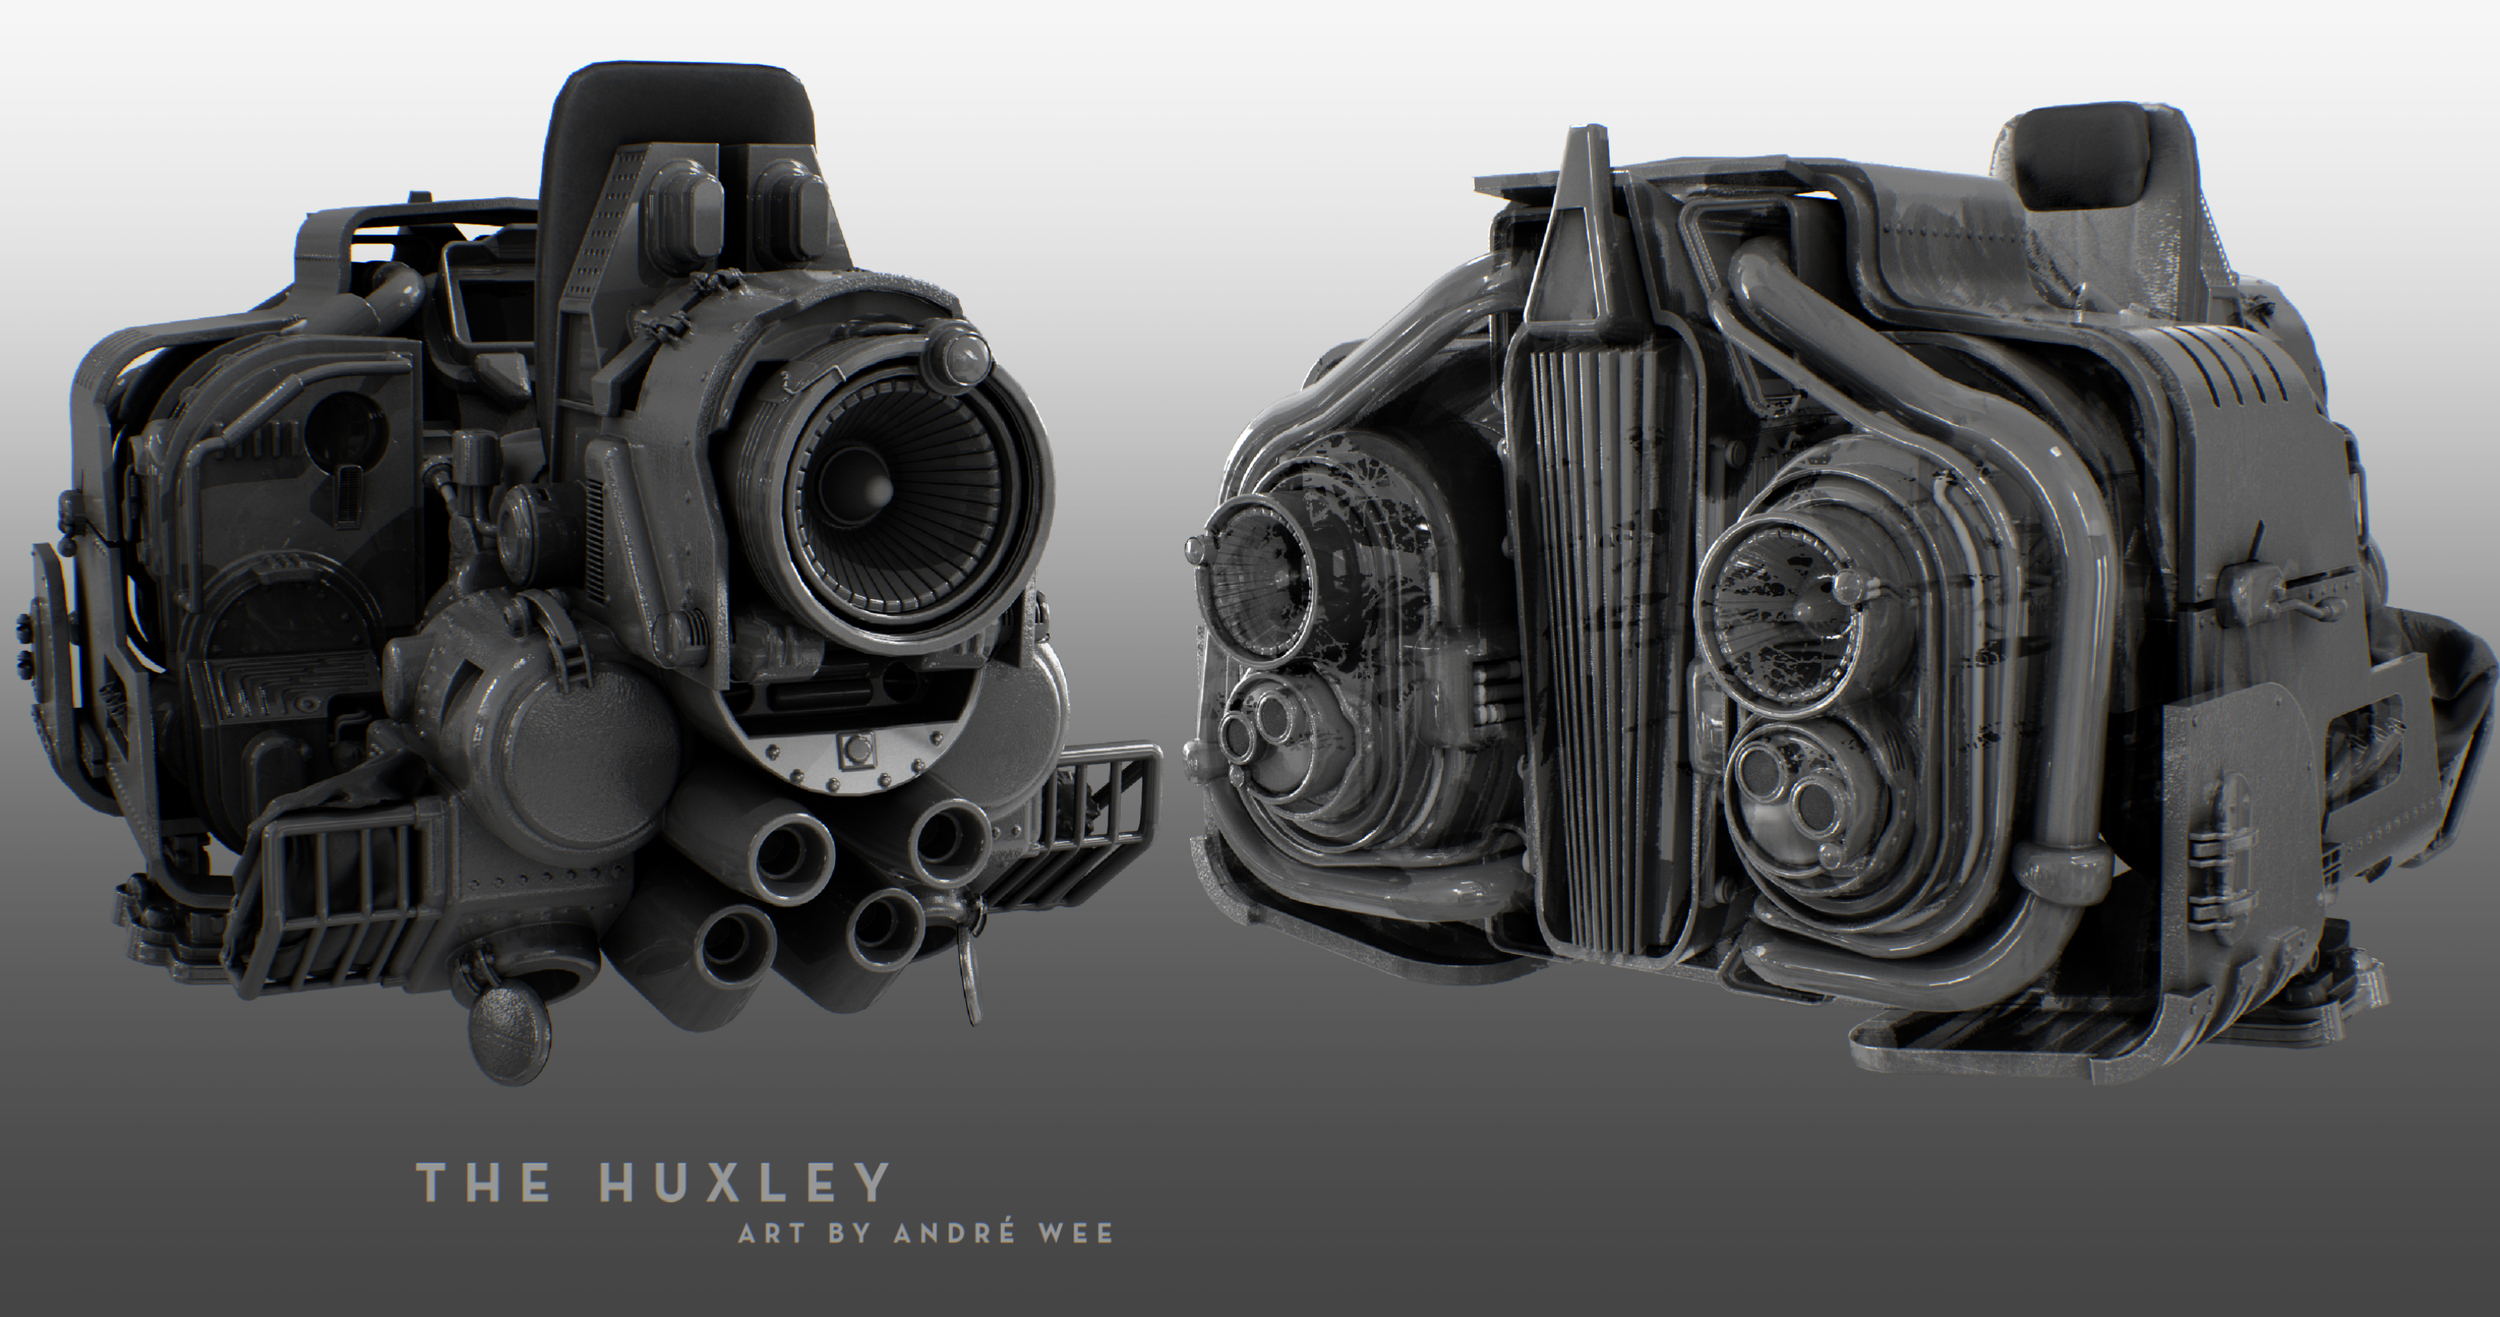 TheHuxley_01_andrewee04.jpg